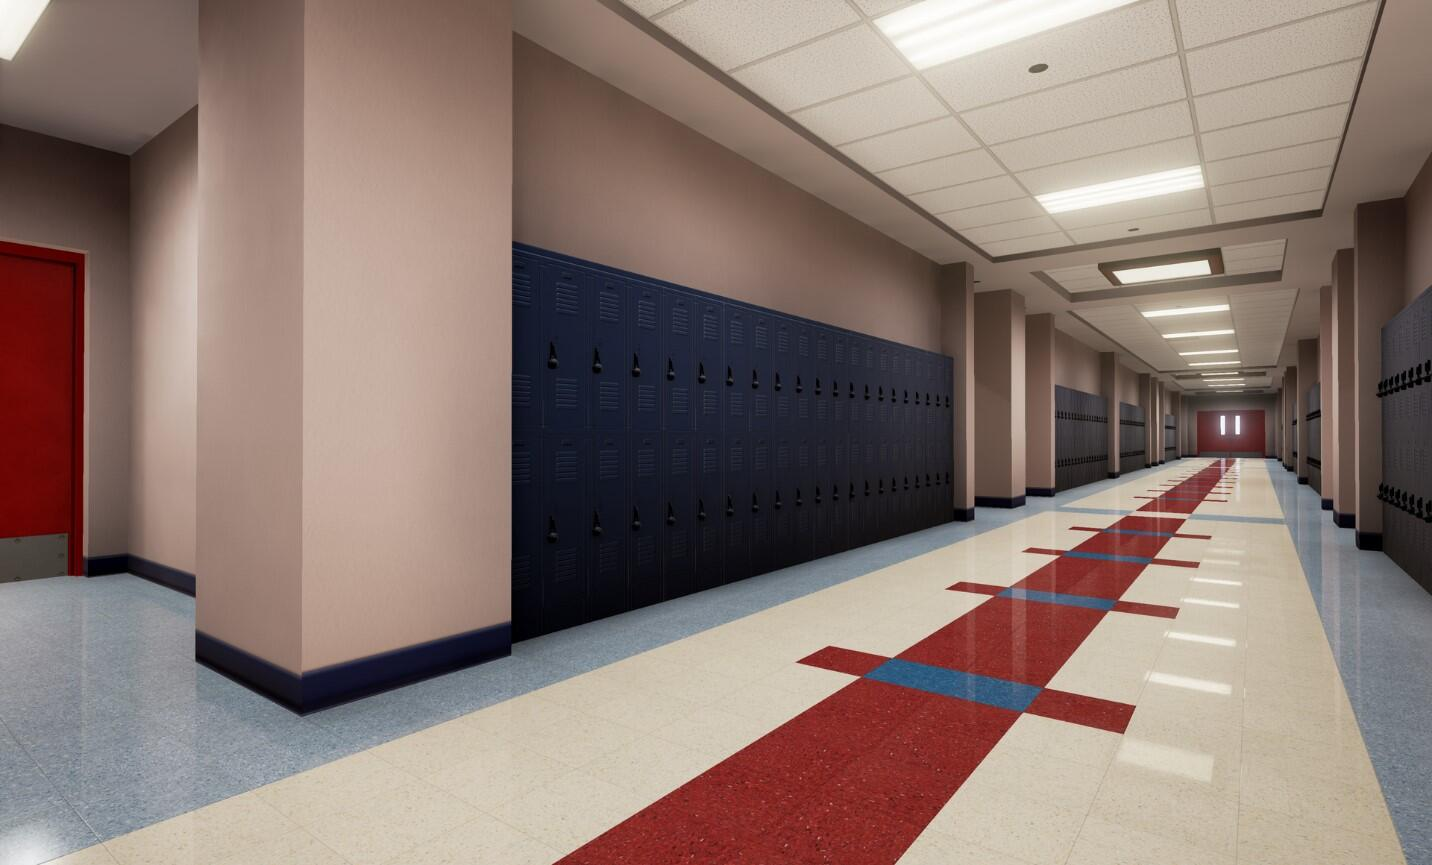 The EDGE virtual training school environment empty hallway and exit doors.